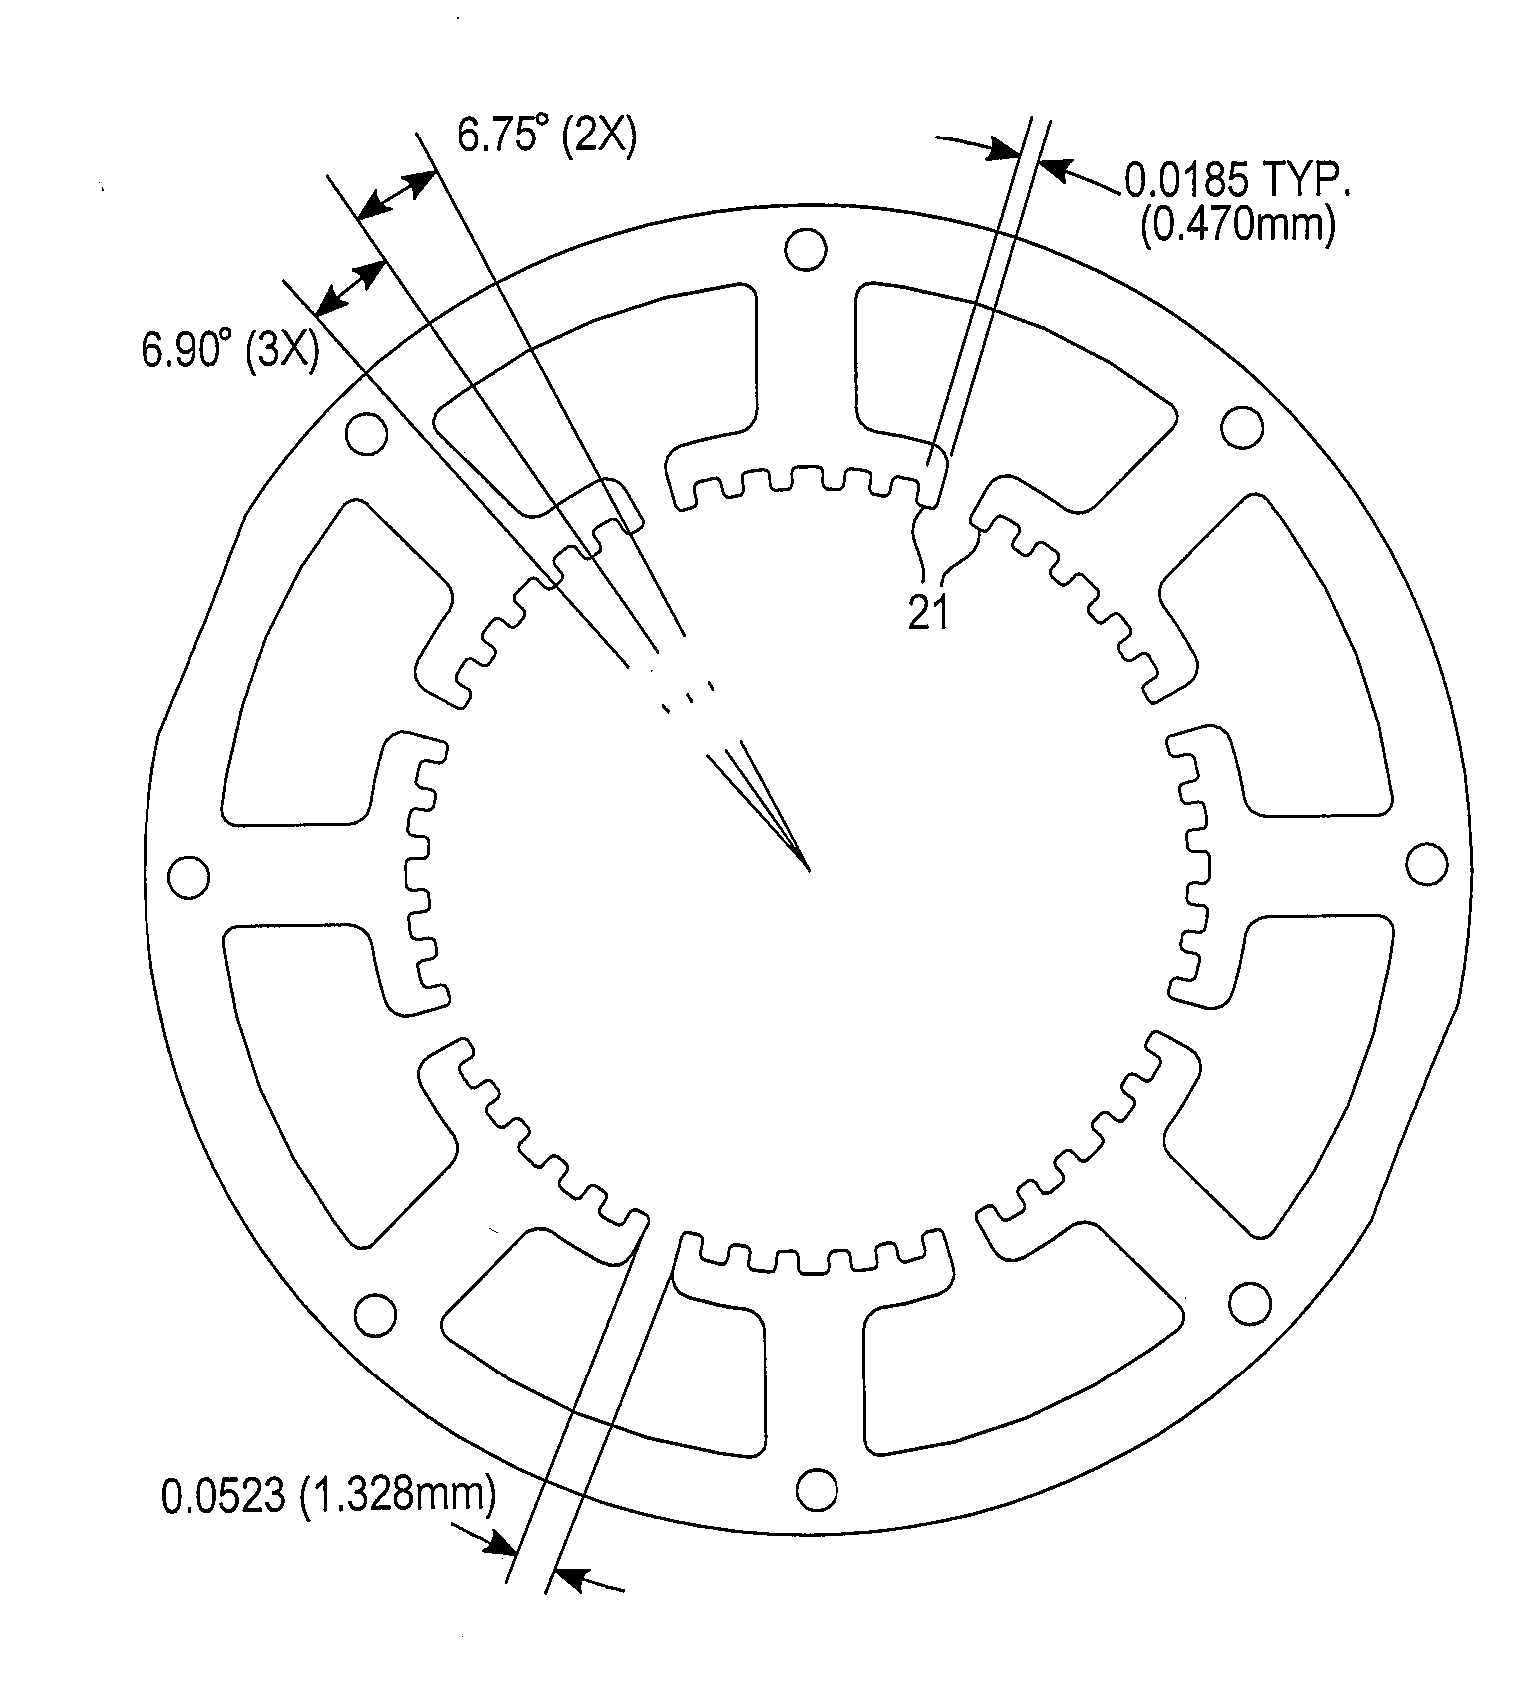 11 tooth stator wiring diagram on patent us20140111056 small stepper motor with maximum stator Wiring Diagram for 02 Honda Rancher 350 to the Stator Module Wiring Diagram